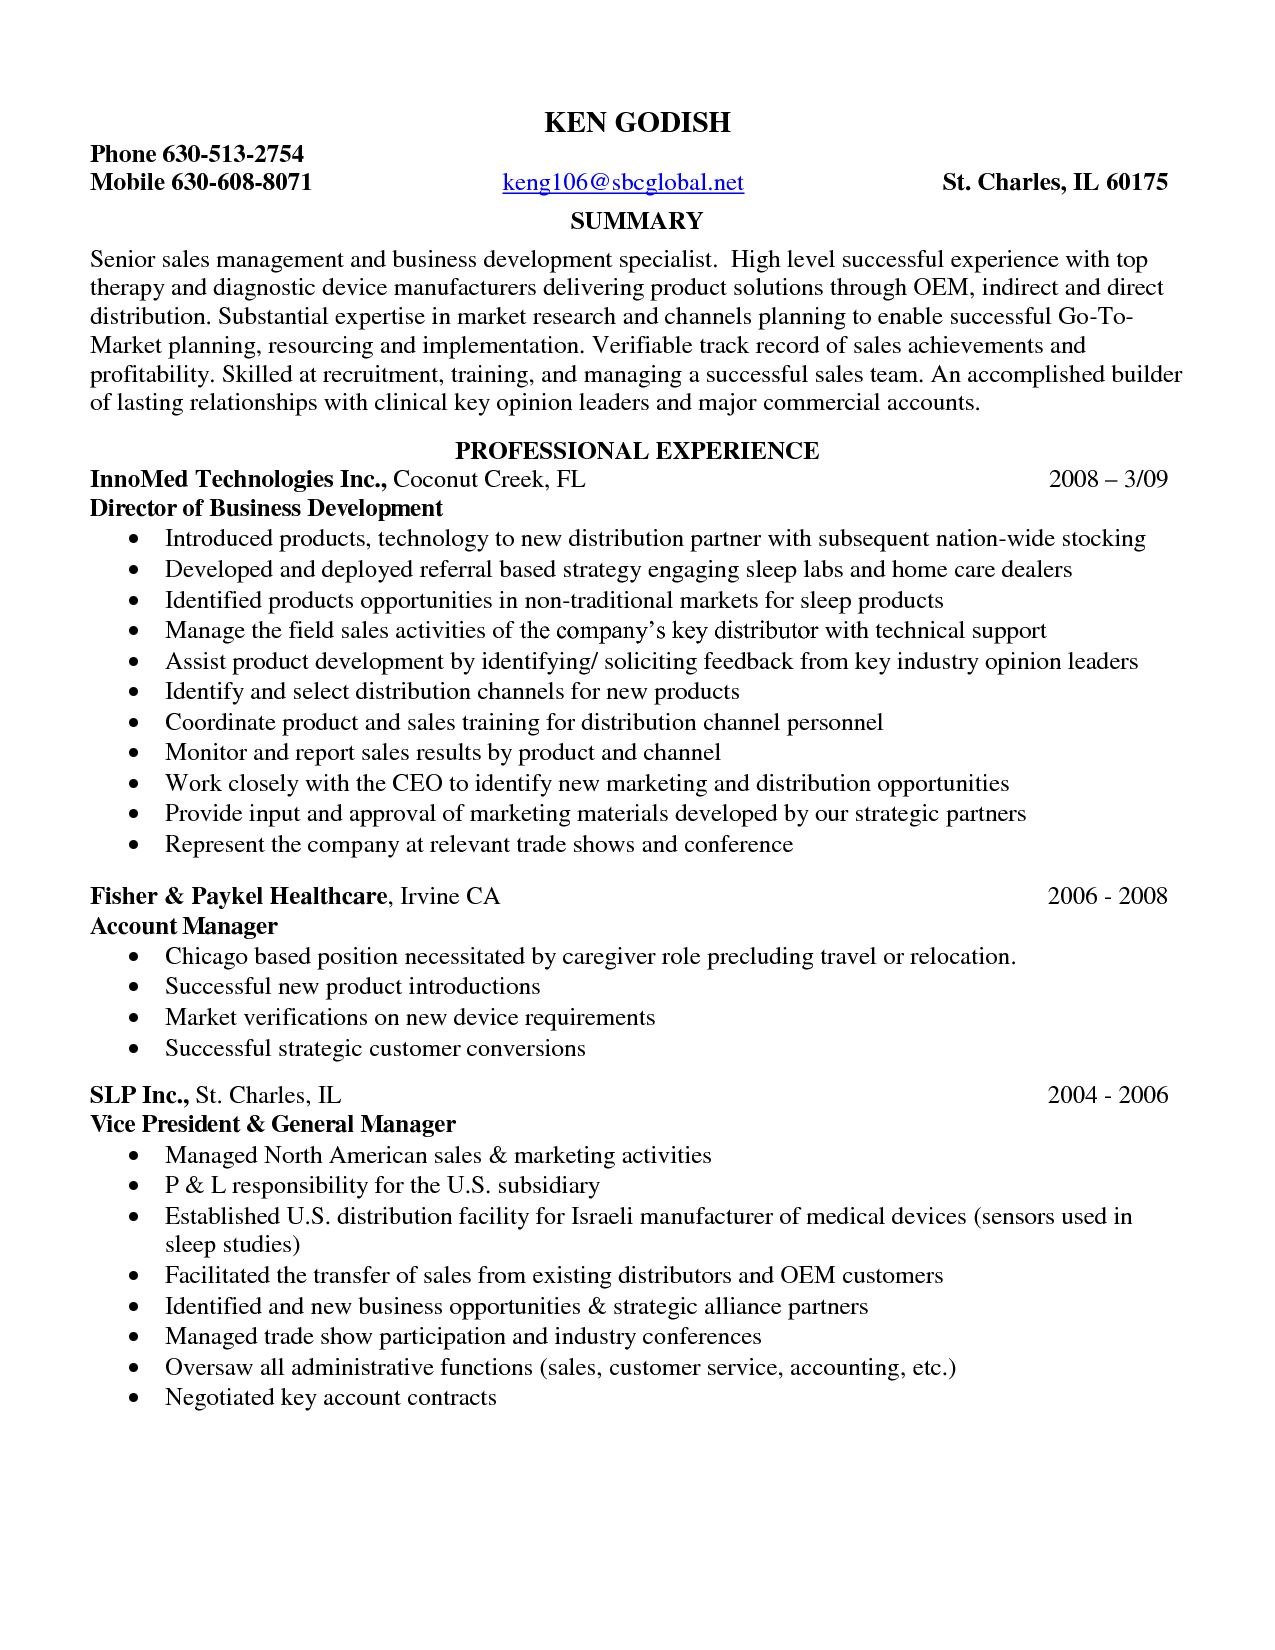 Entry Level Marketing Resume Samples Sample Resume Entry Level Pharmaceutical Sales Sample